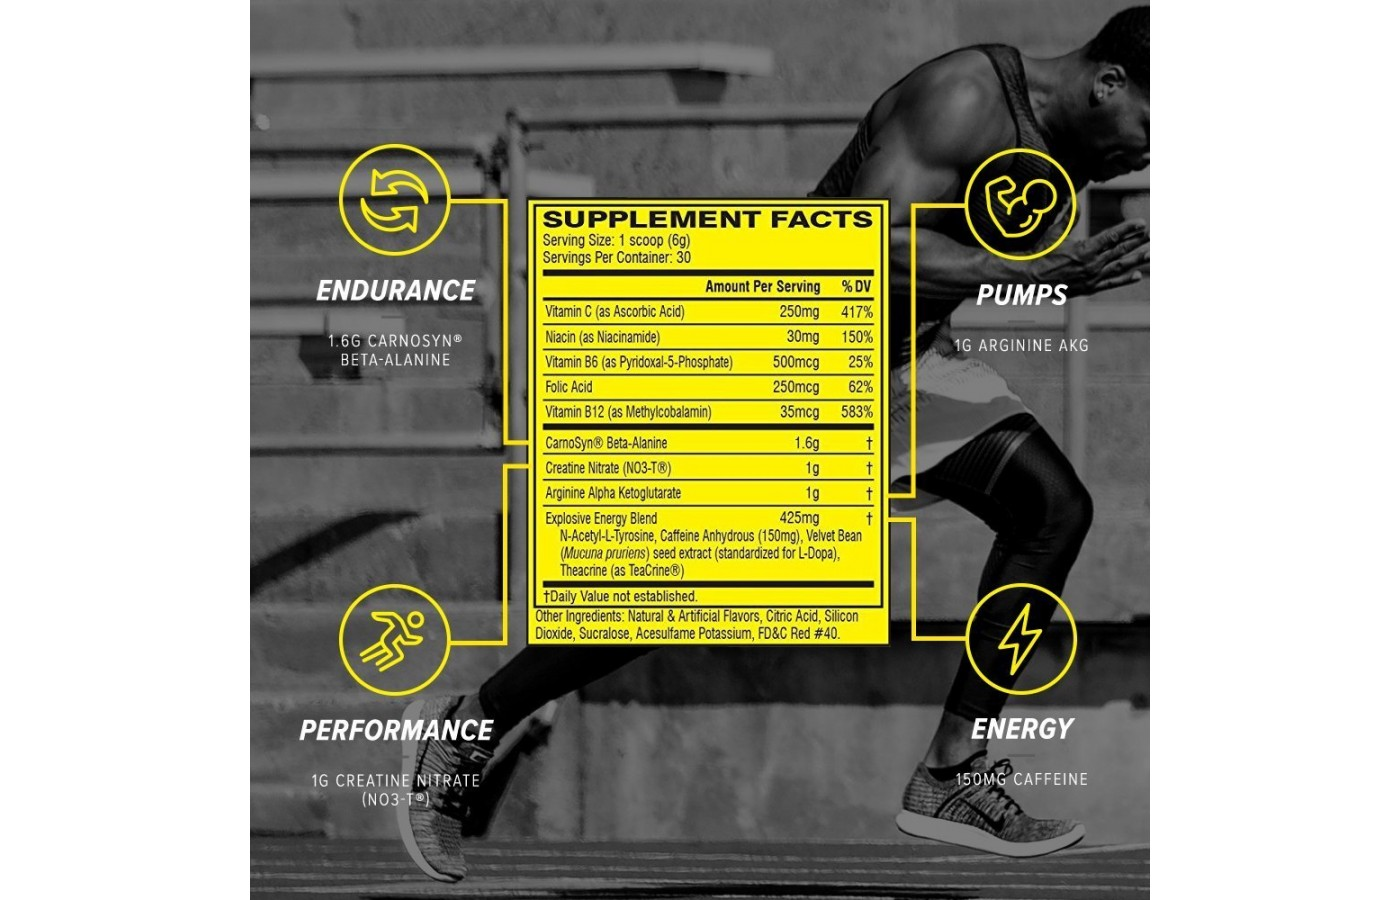 c4 supplement facts